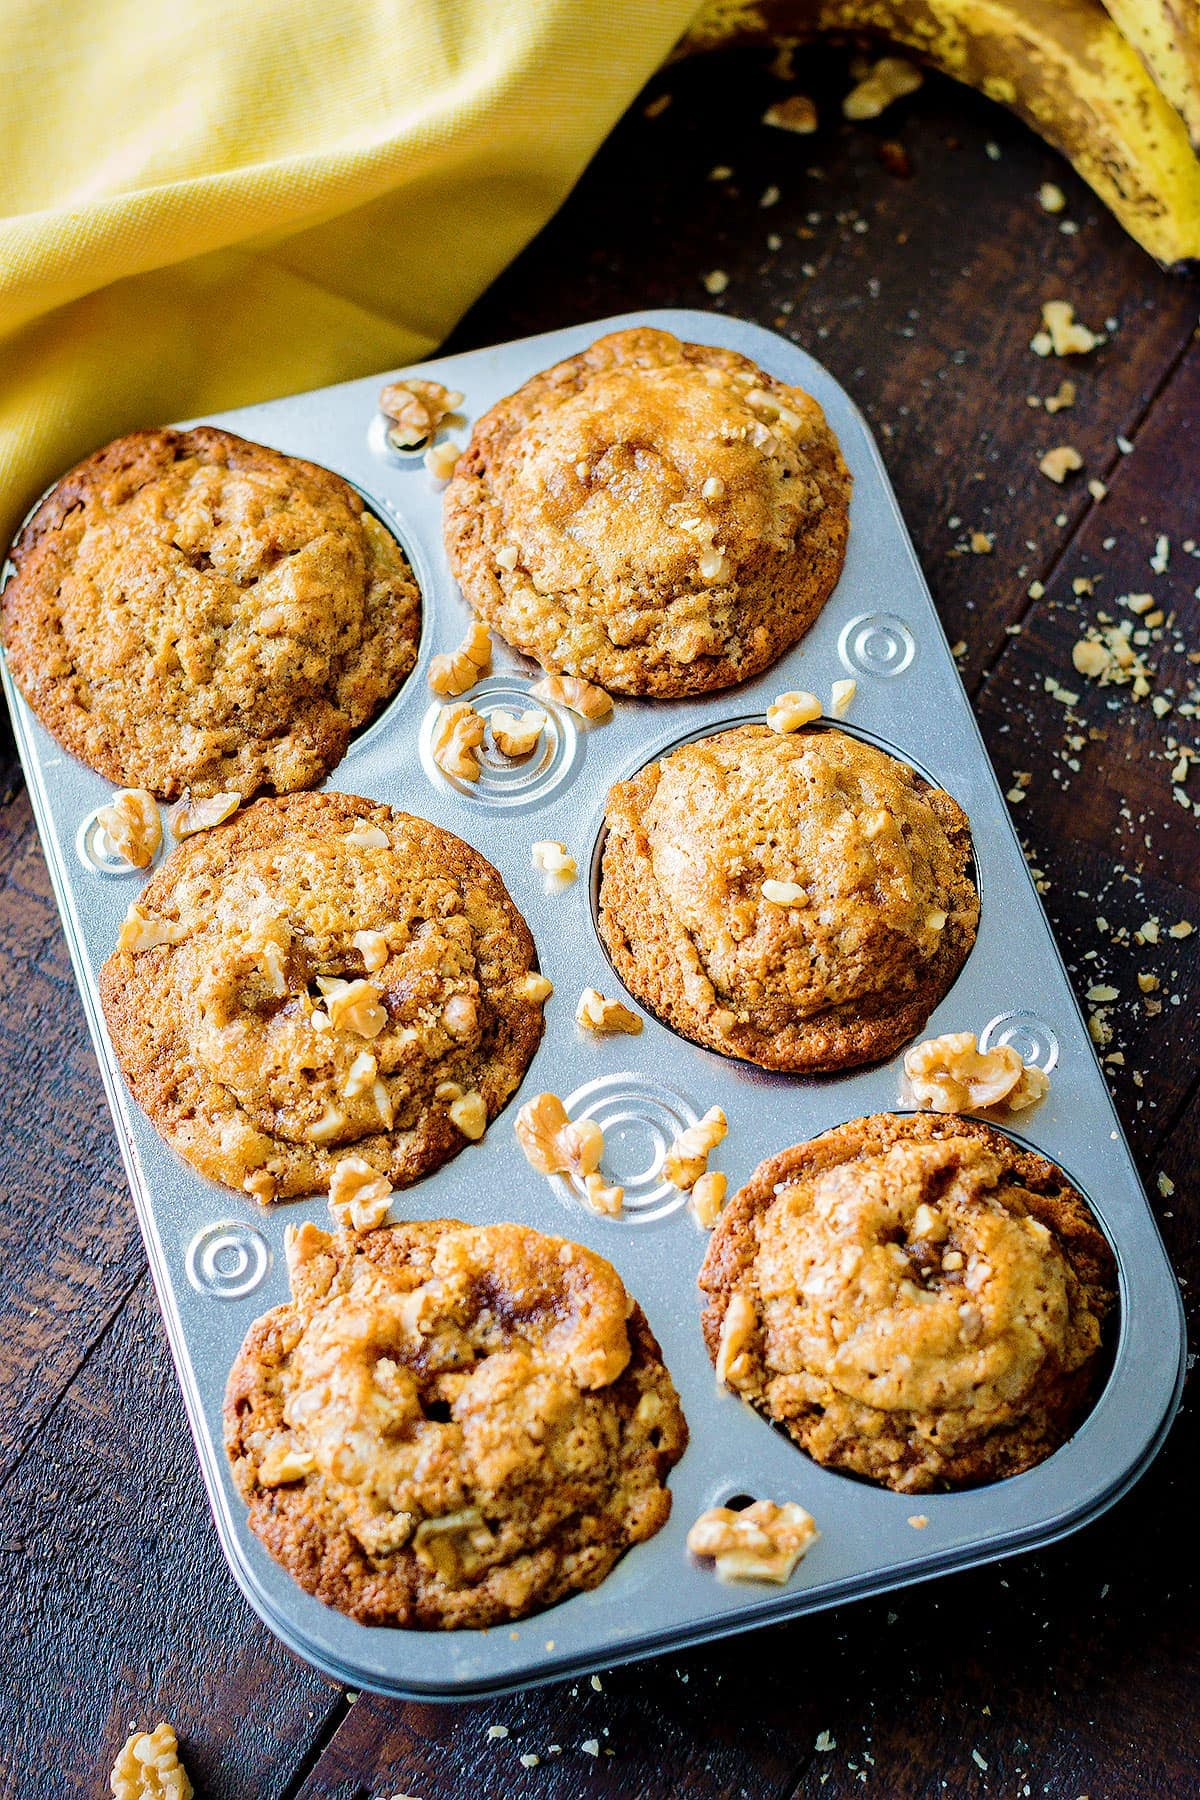 Muffins in a muffin tin surrounded by scatter walnuts on a wooden table with yellow napkin and bananas in the background.